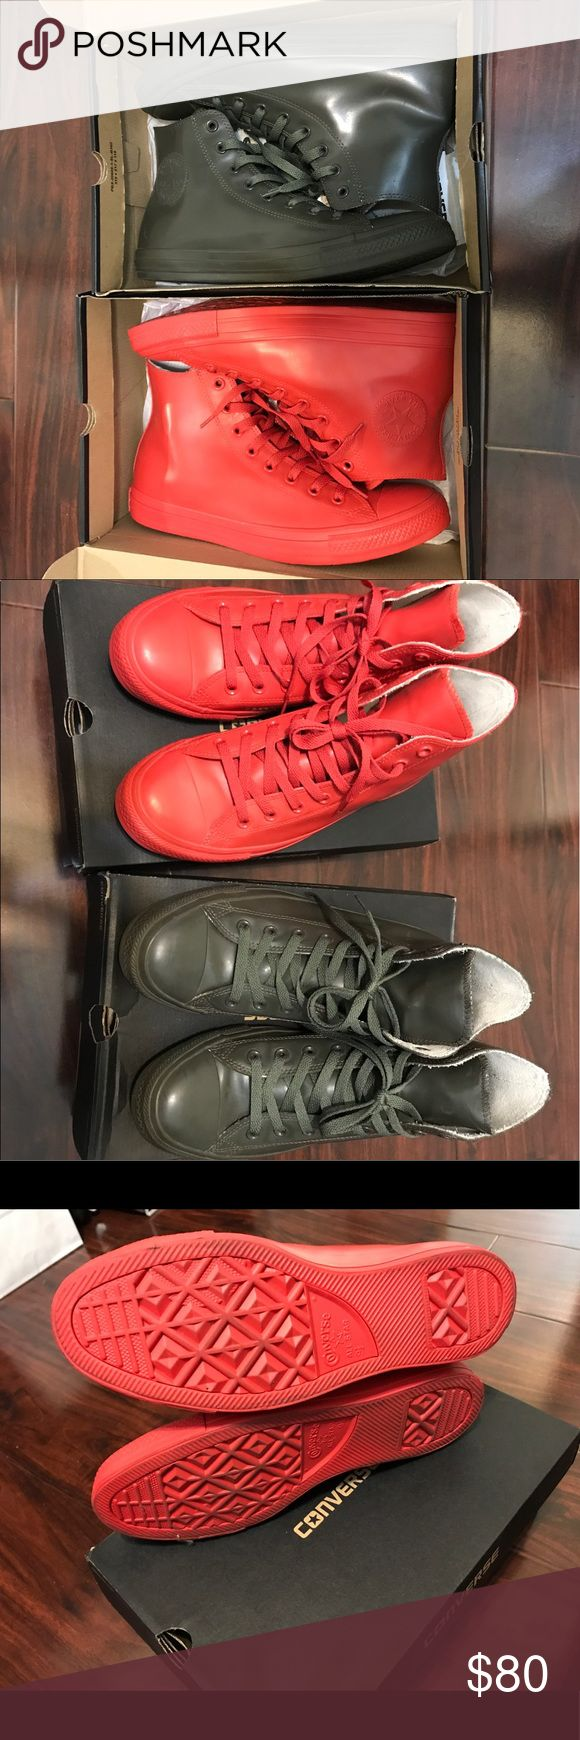 TAKE TWO! Men's Converse Waterproof Hightop-9.5US Men's Like New - Worn Once Converse Waterproof Hightop. Size 9.5 both. Red and Olive Green. Complete with box. My loss is your gain. Bored of this already. SOLD OUT. Converse Shoes Rain & Snow Boots